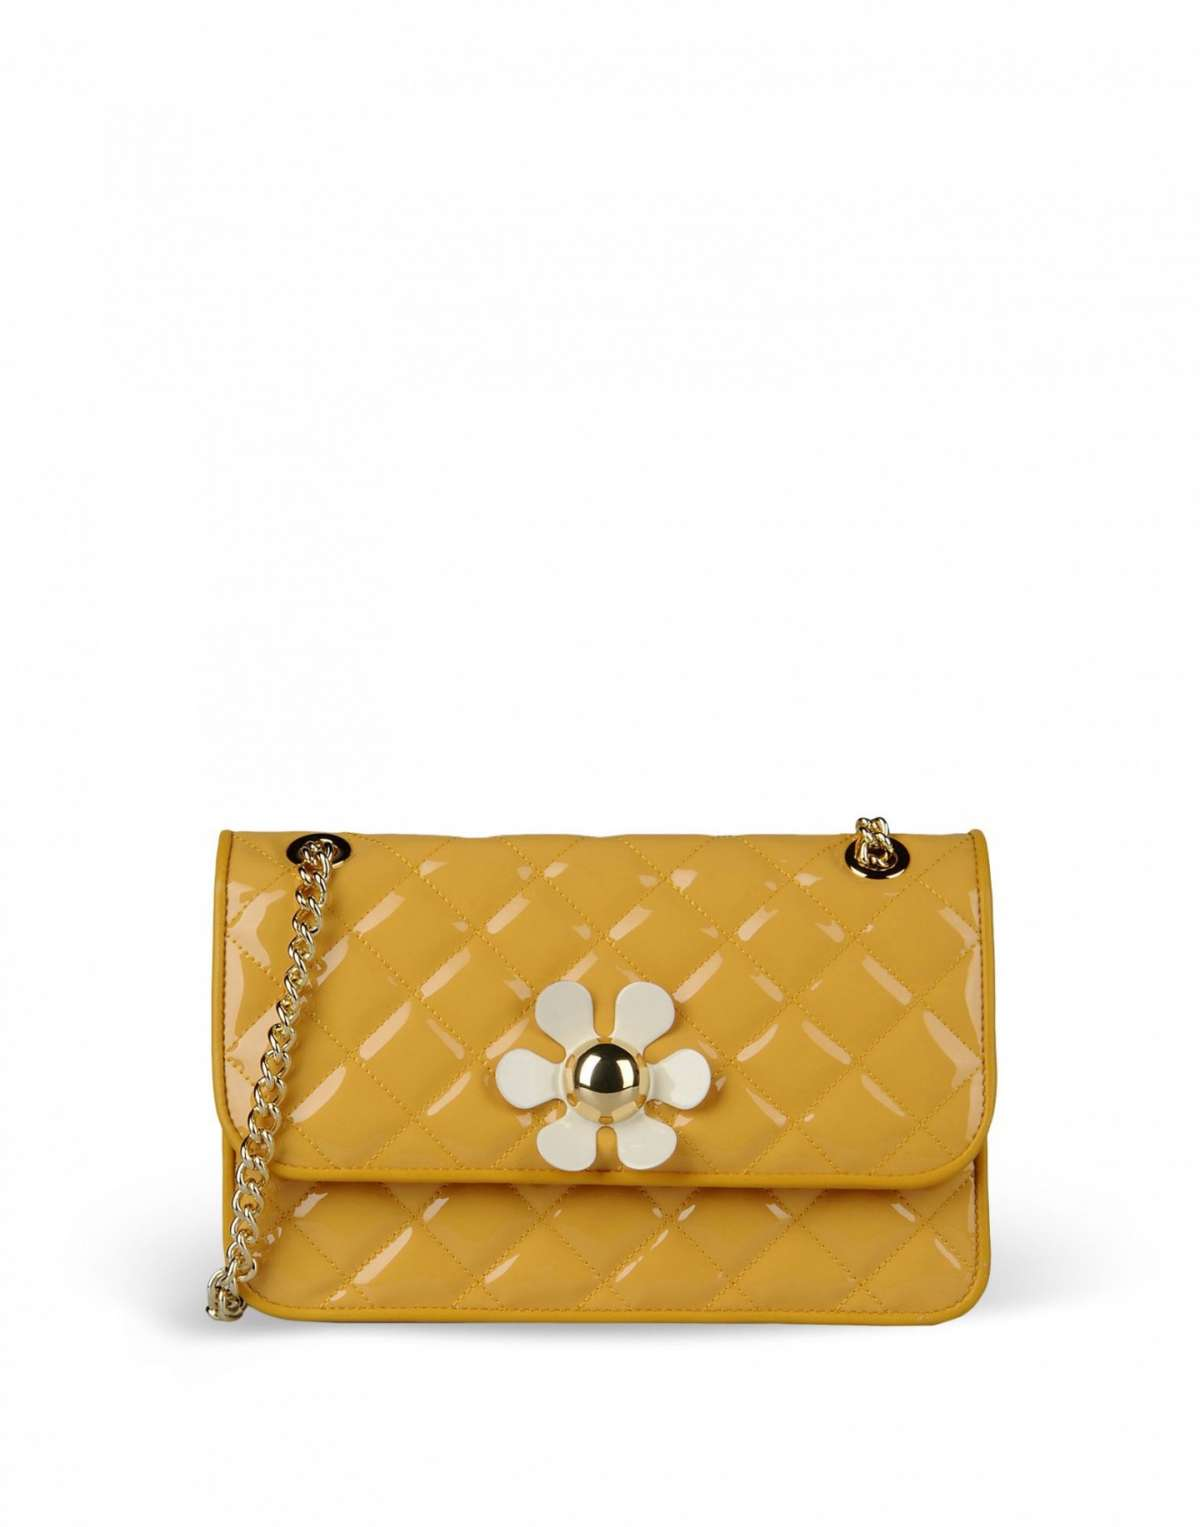 Tracolla ocra Moschino Cheap and Chic